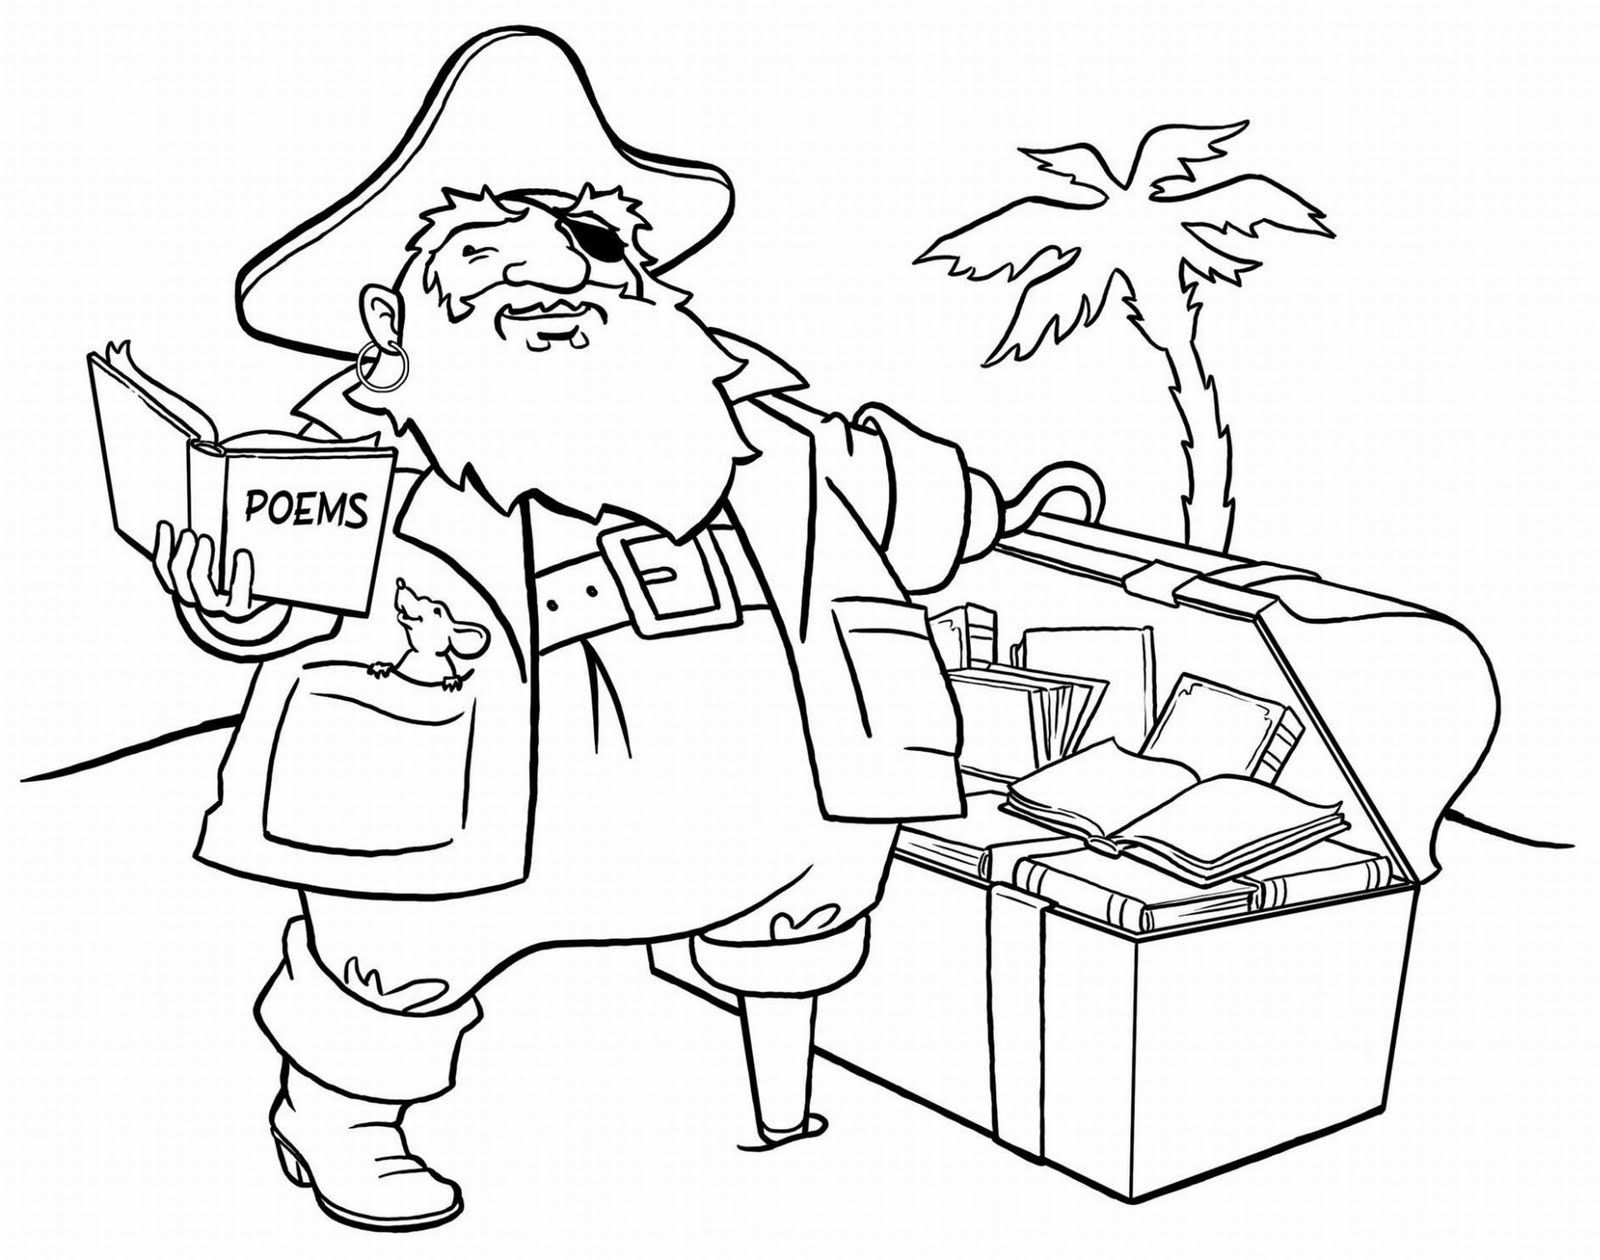 star trek coloring pages  Coloring Pages Online Pirates Coloring